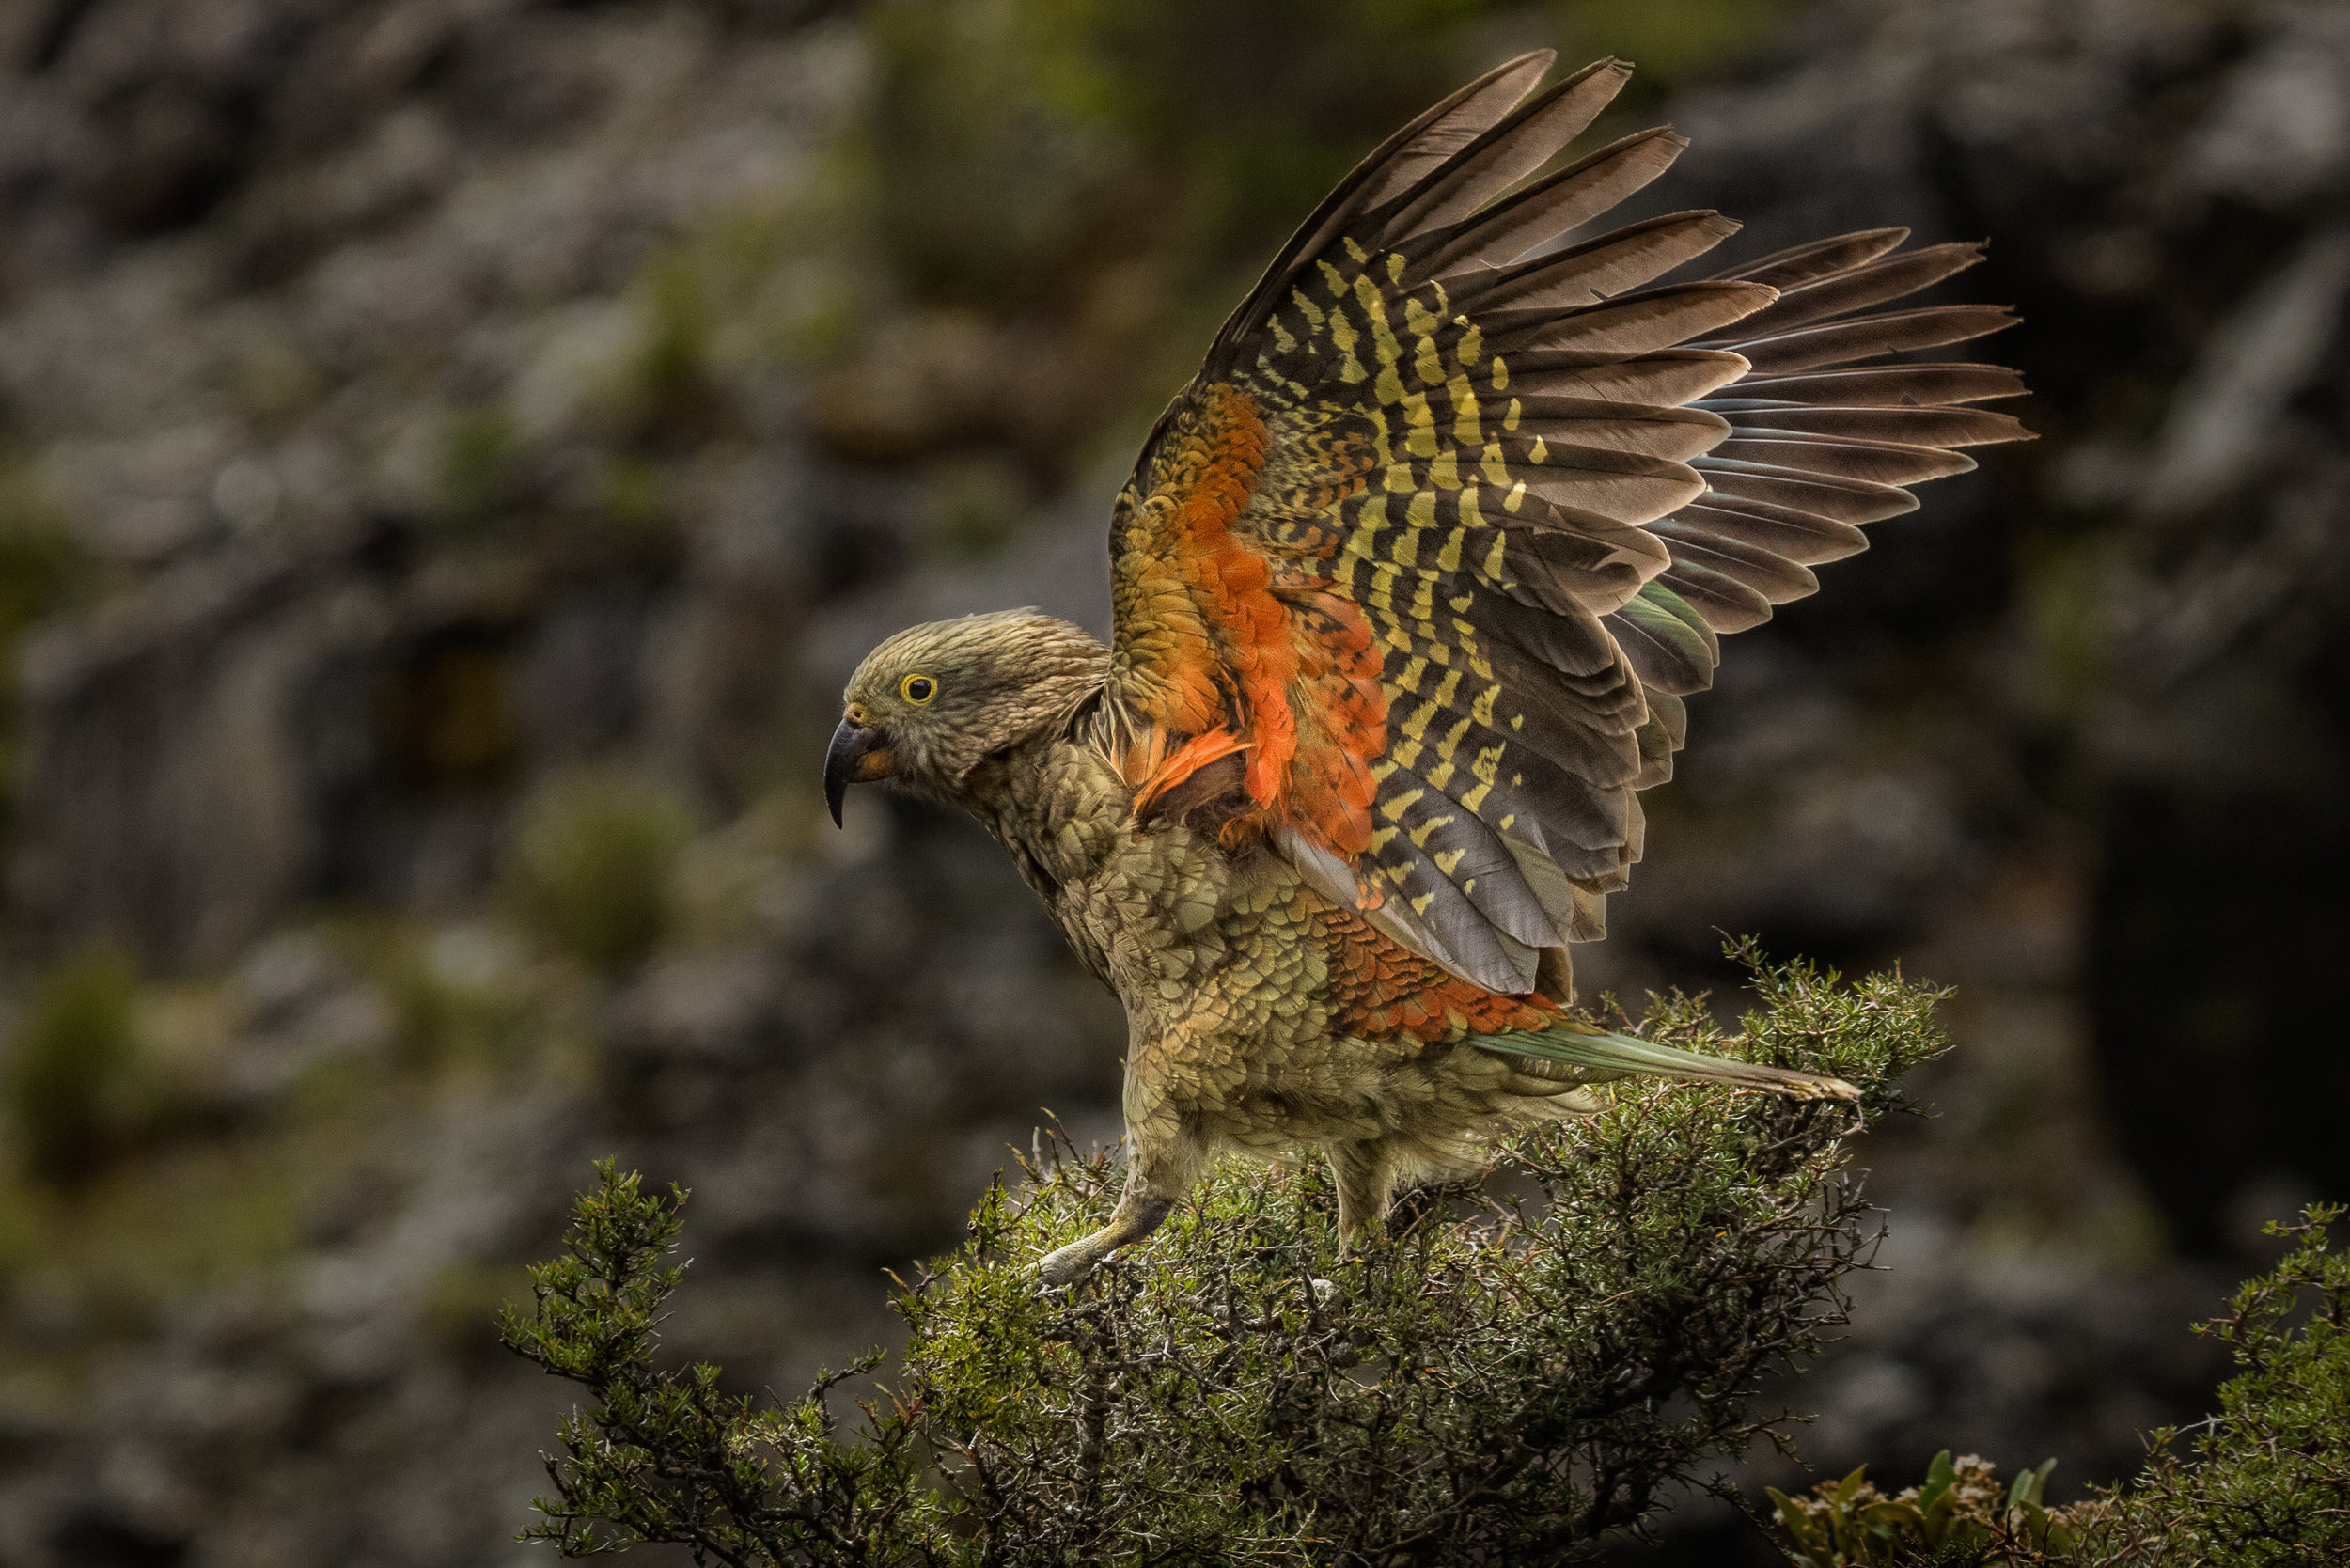 Juvenile Kea, Carolyn Elcock ANPSNZ AFIAP, Geoff Moon Nature Trophy and PSNZ Gold Medal for Best New Zealand Wildlife Projected Image